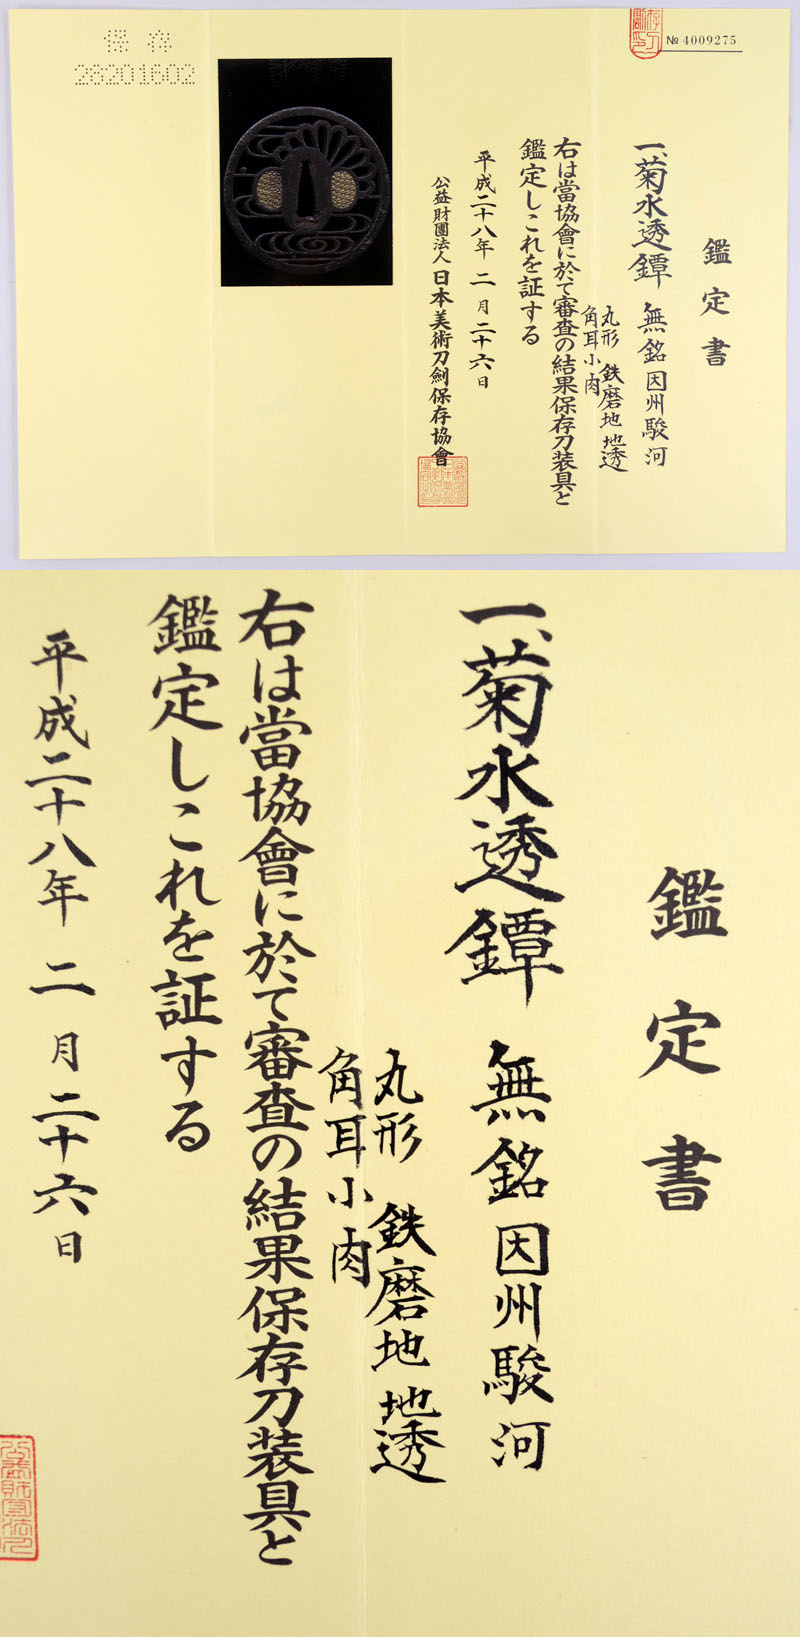 菊水透鍔 無銘 因州駿河 Picture of Certificate